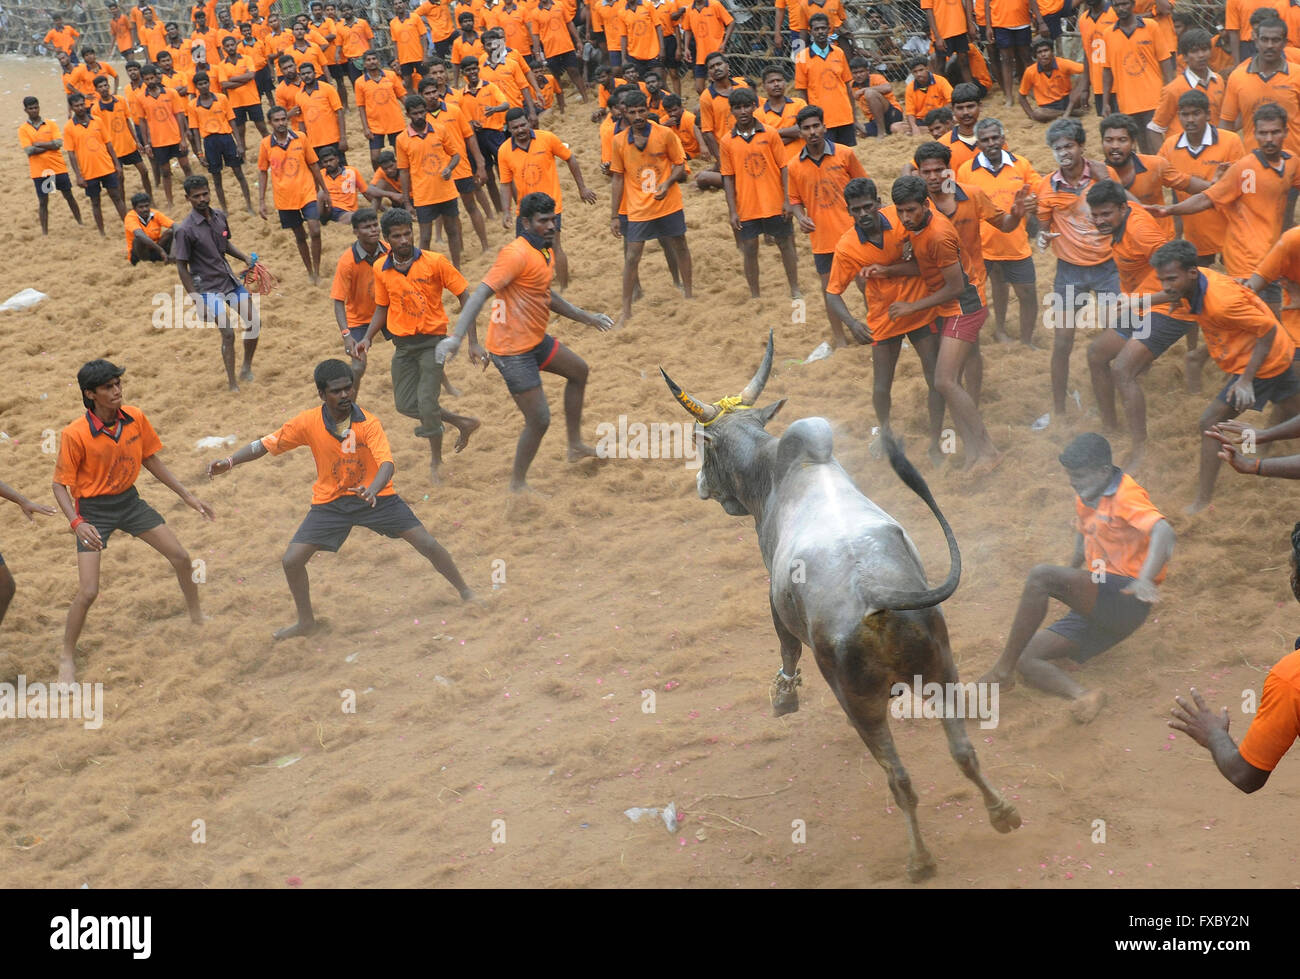 Jallikattu is one of the oldest living ancient sports seen in the modern era. India's Supreme Court had banned - Stock Image